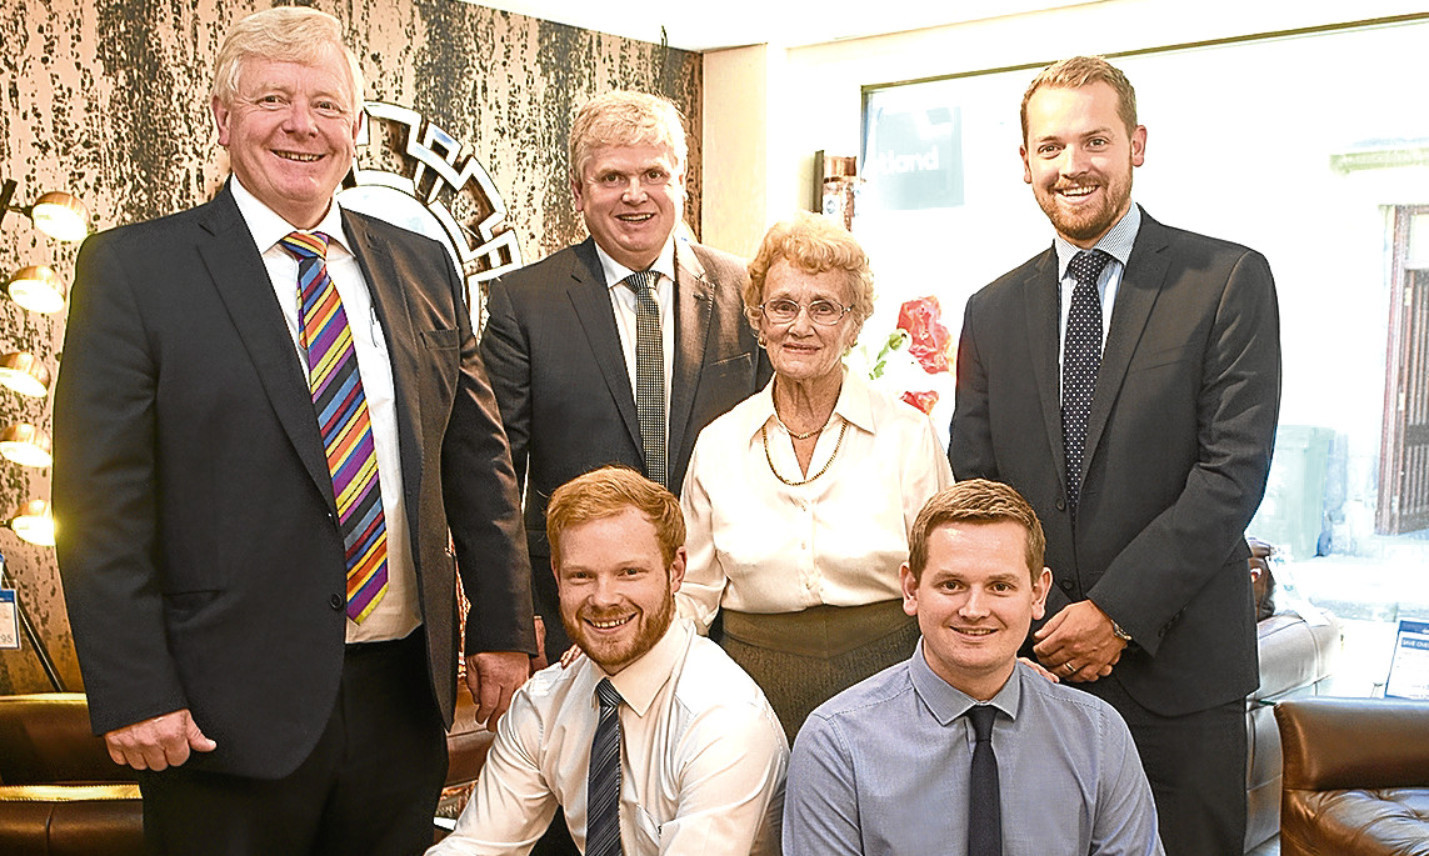 The Philp family who run furniture retailer Gillies